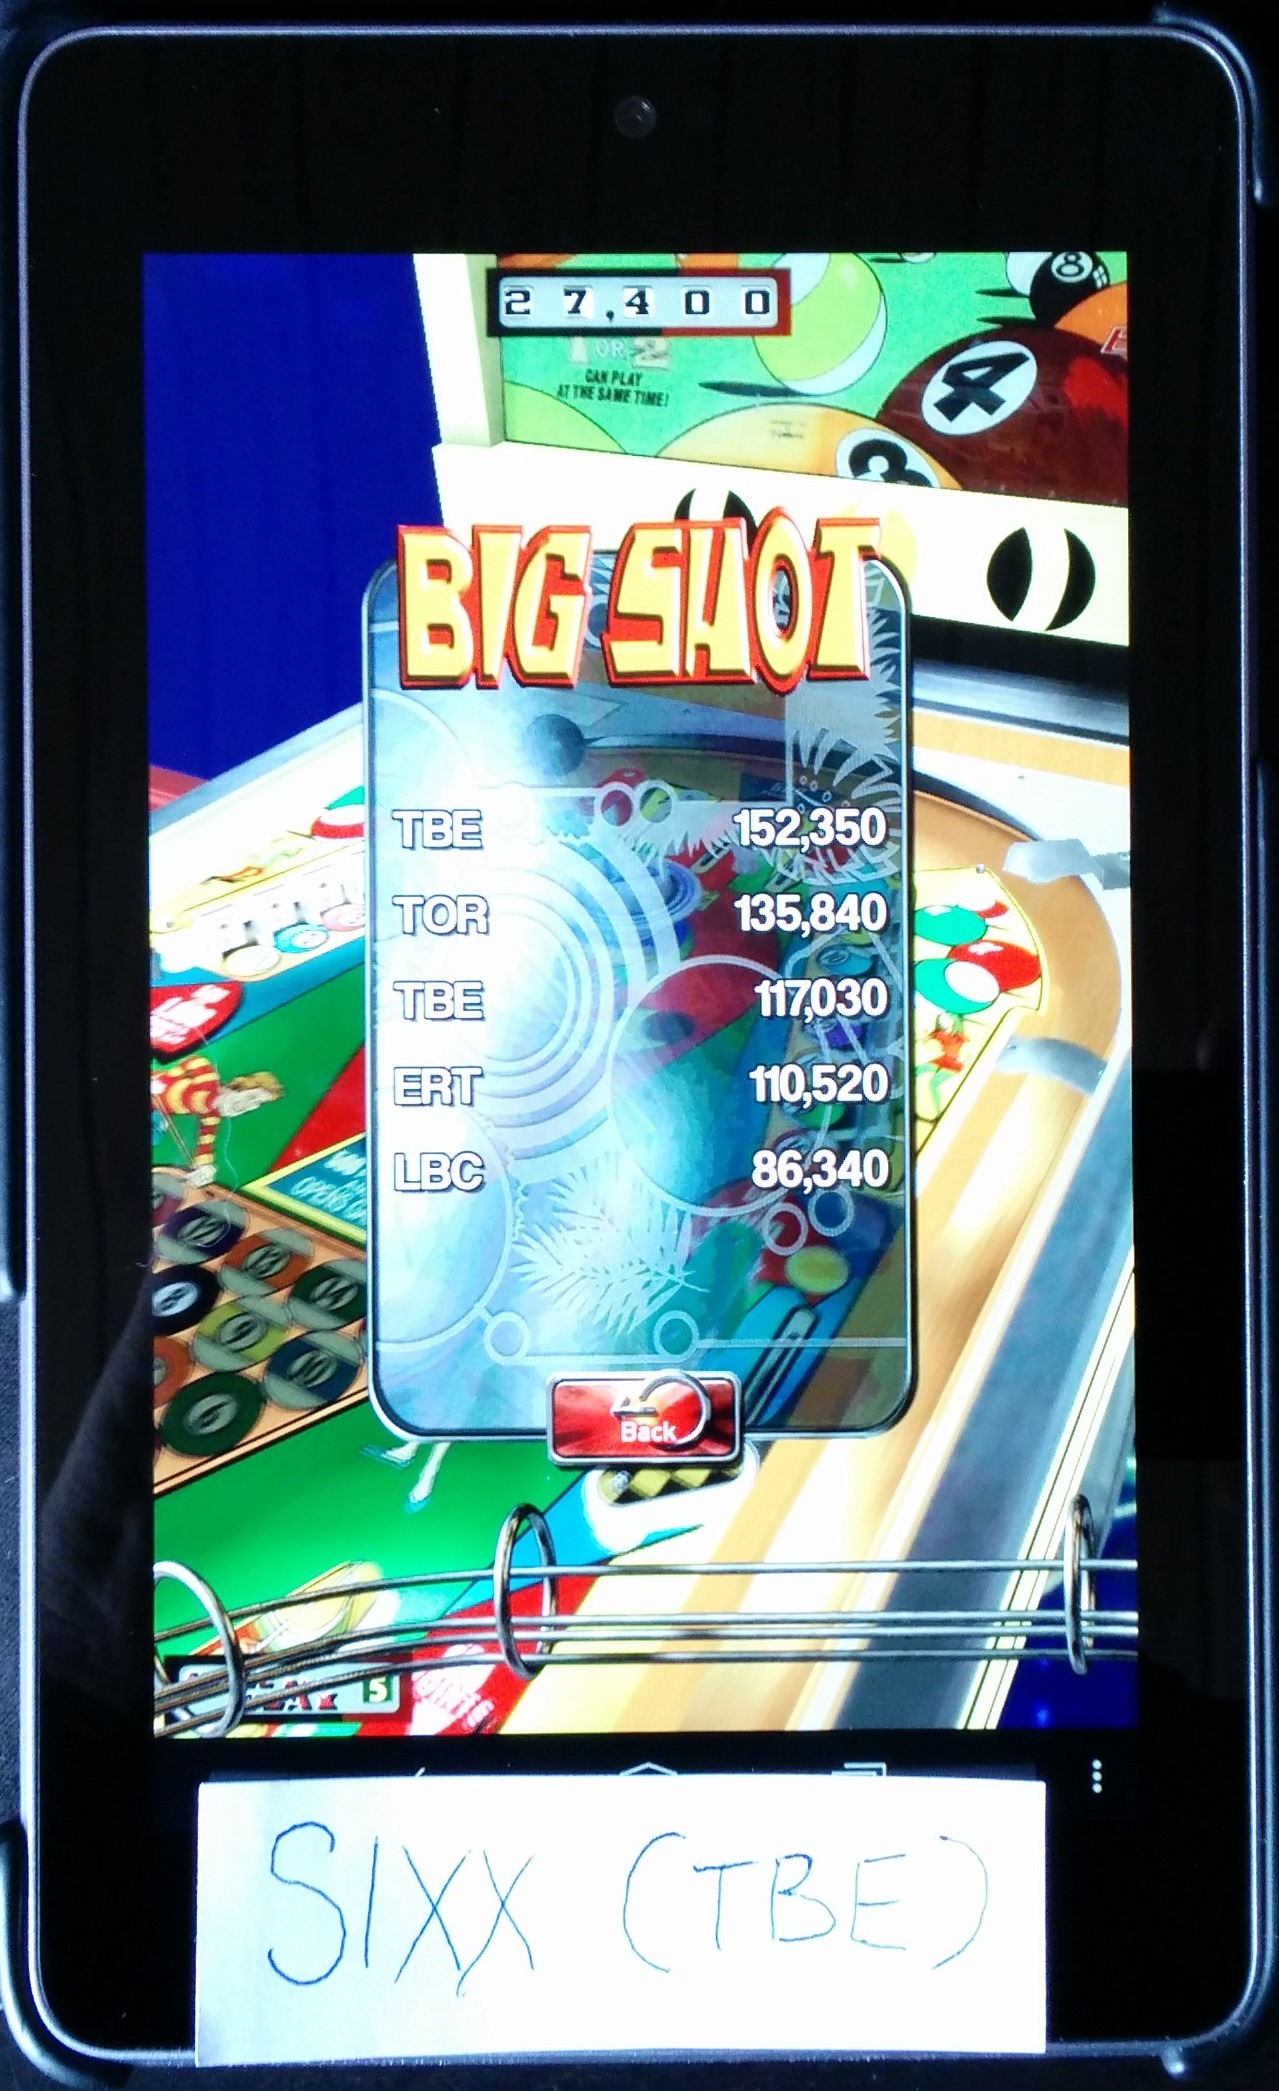 Pinball Arcade: Big Shot 152,350 points